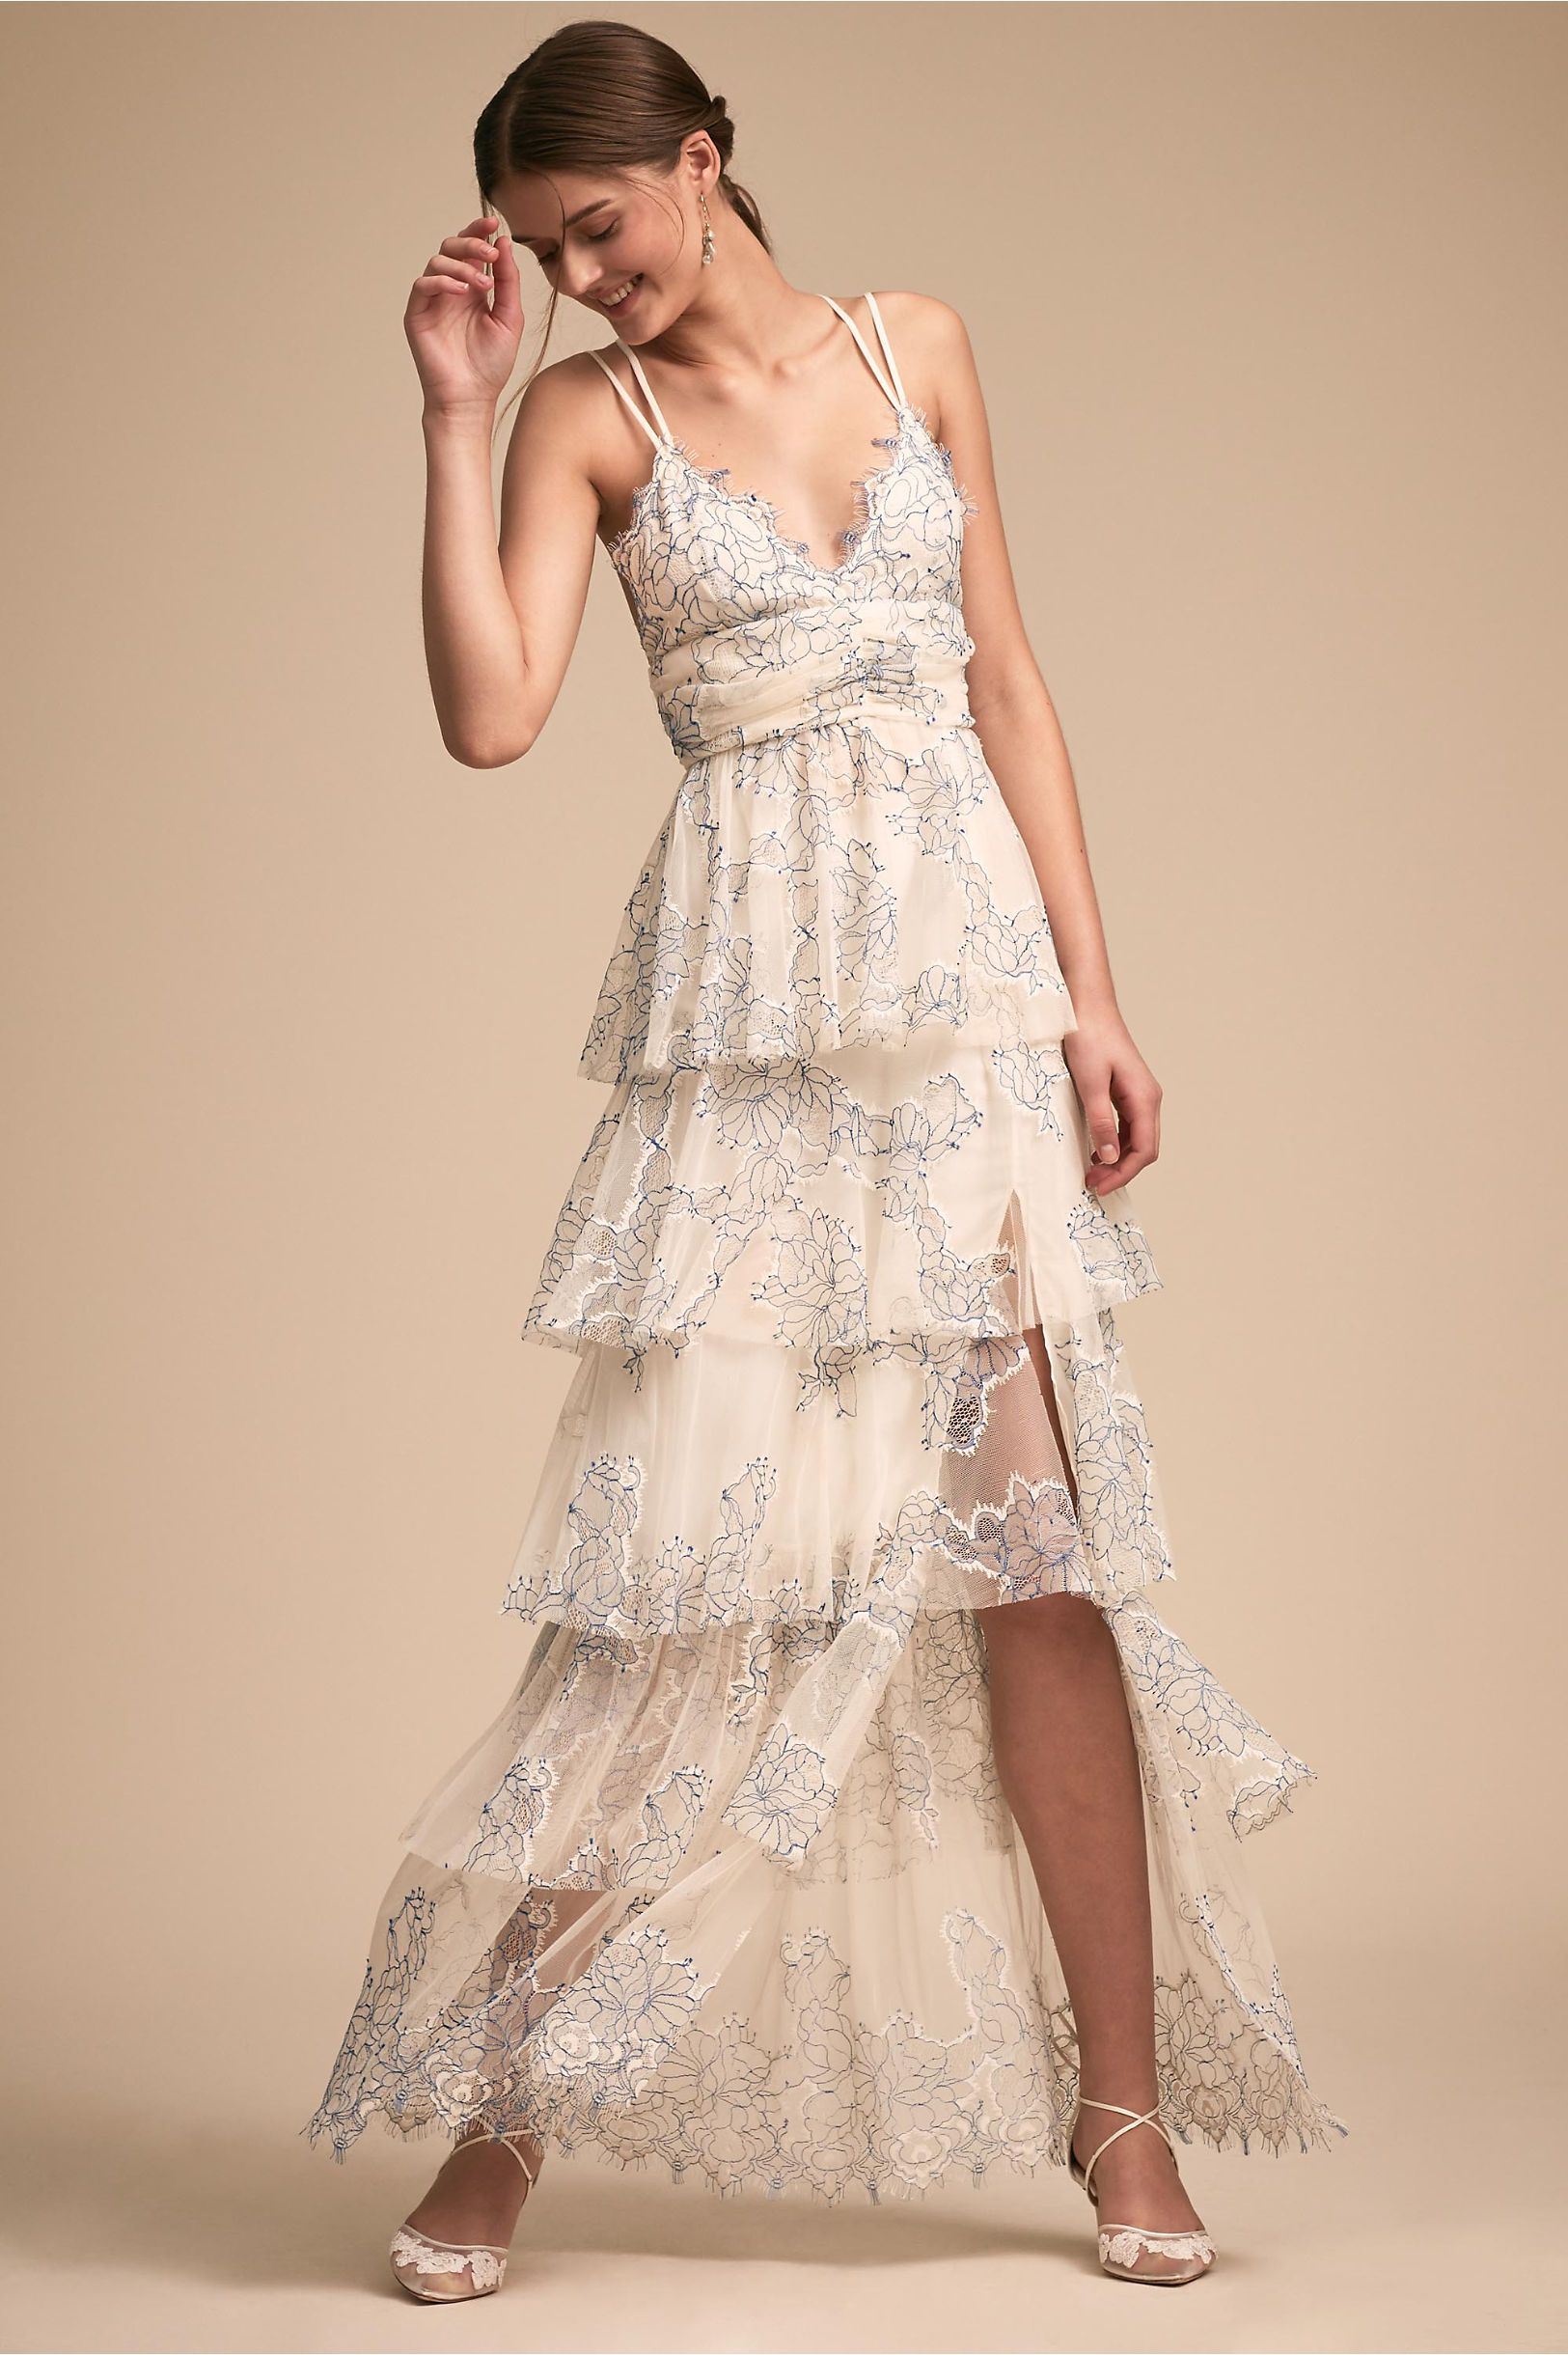 Casual wedding dresses with color  BHLDN Love Is Love Dress Blue Motif in New u Noteworthy  BHLDN